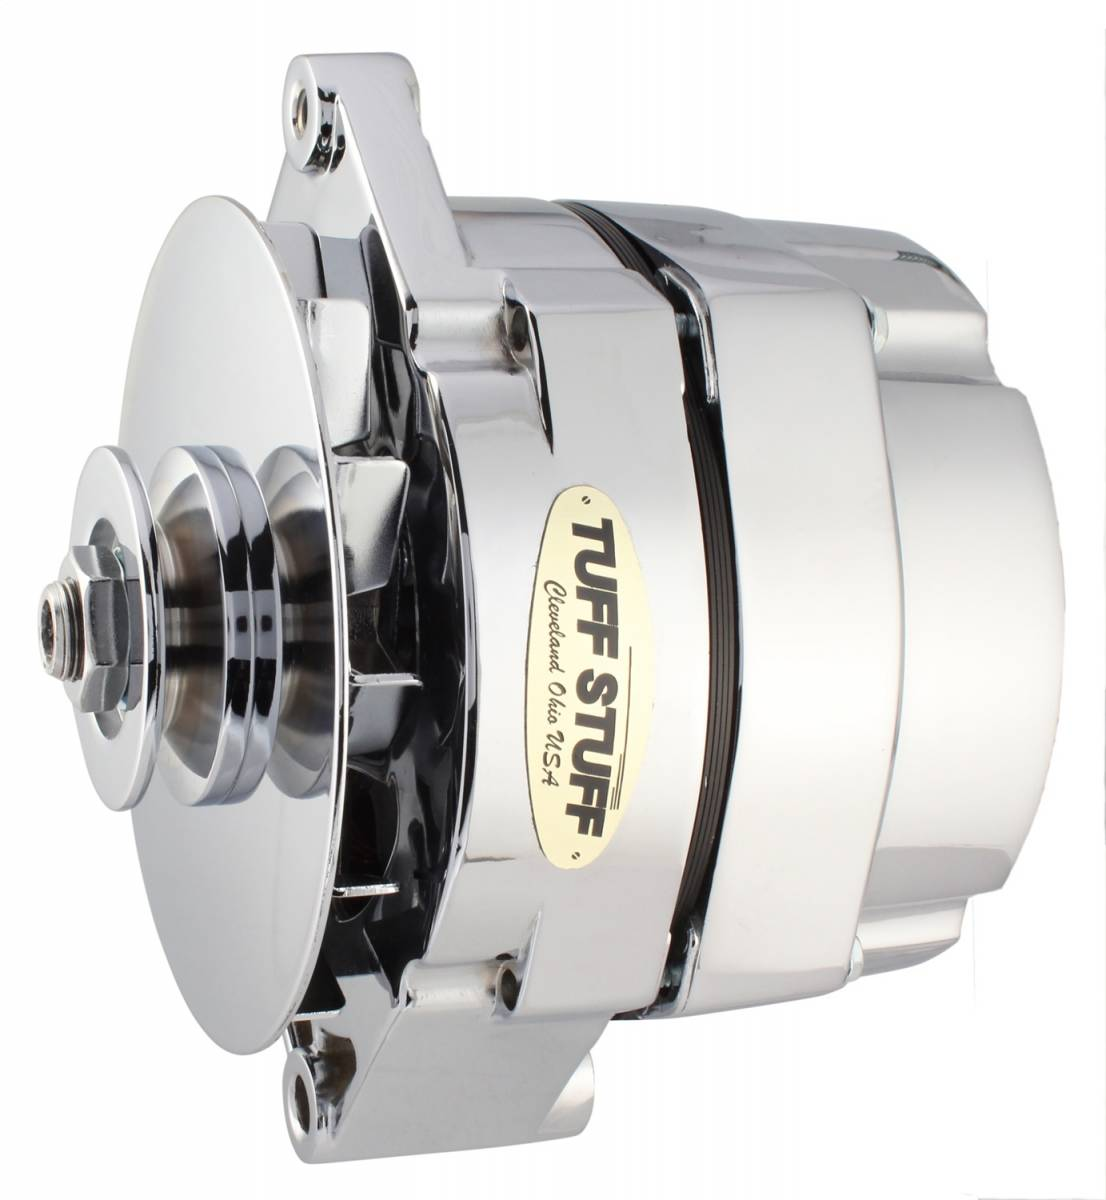 Tuff Stuff Performance - Alternator 100 AMP OEM Wire V Groove Pulley External Regulator Chrome Must Be Used With An External Solid State Voltage Regulator 7102NC